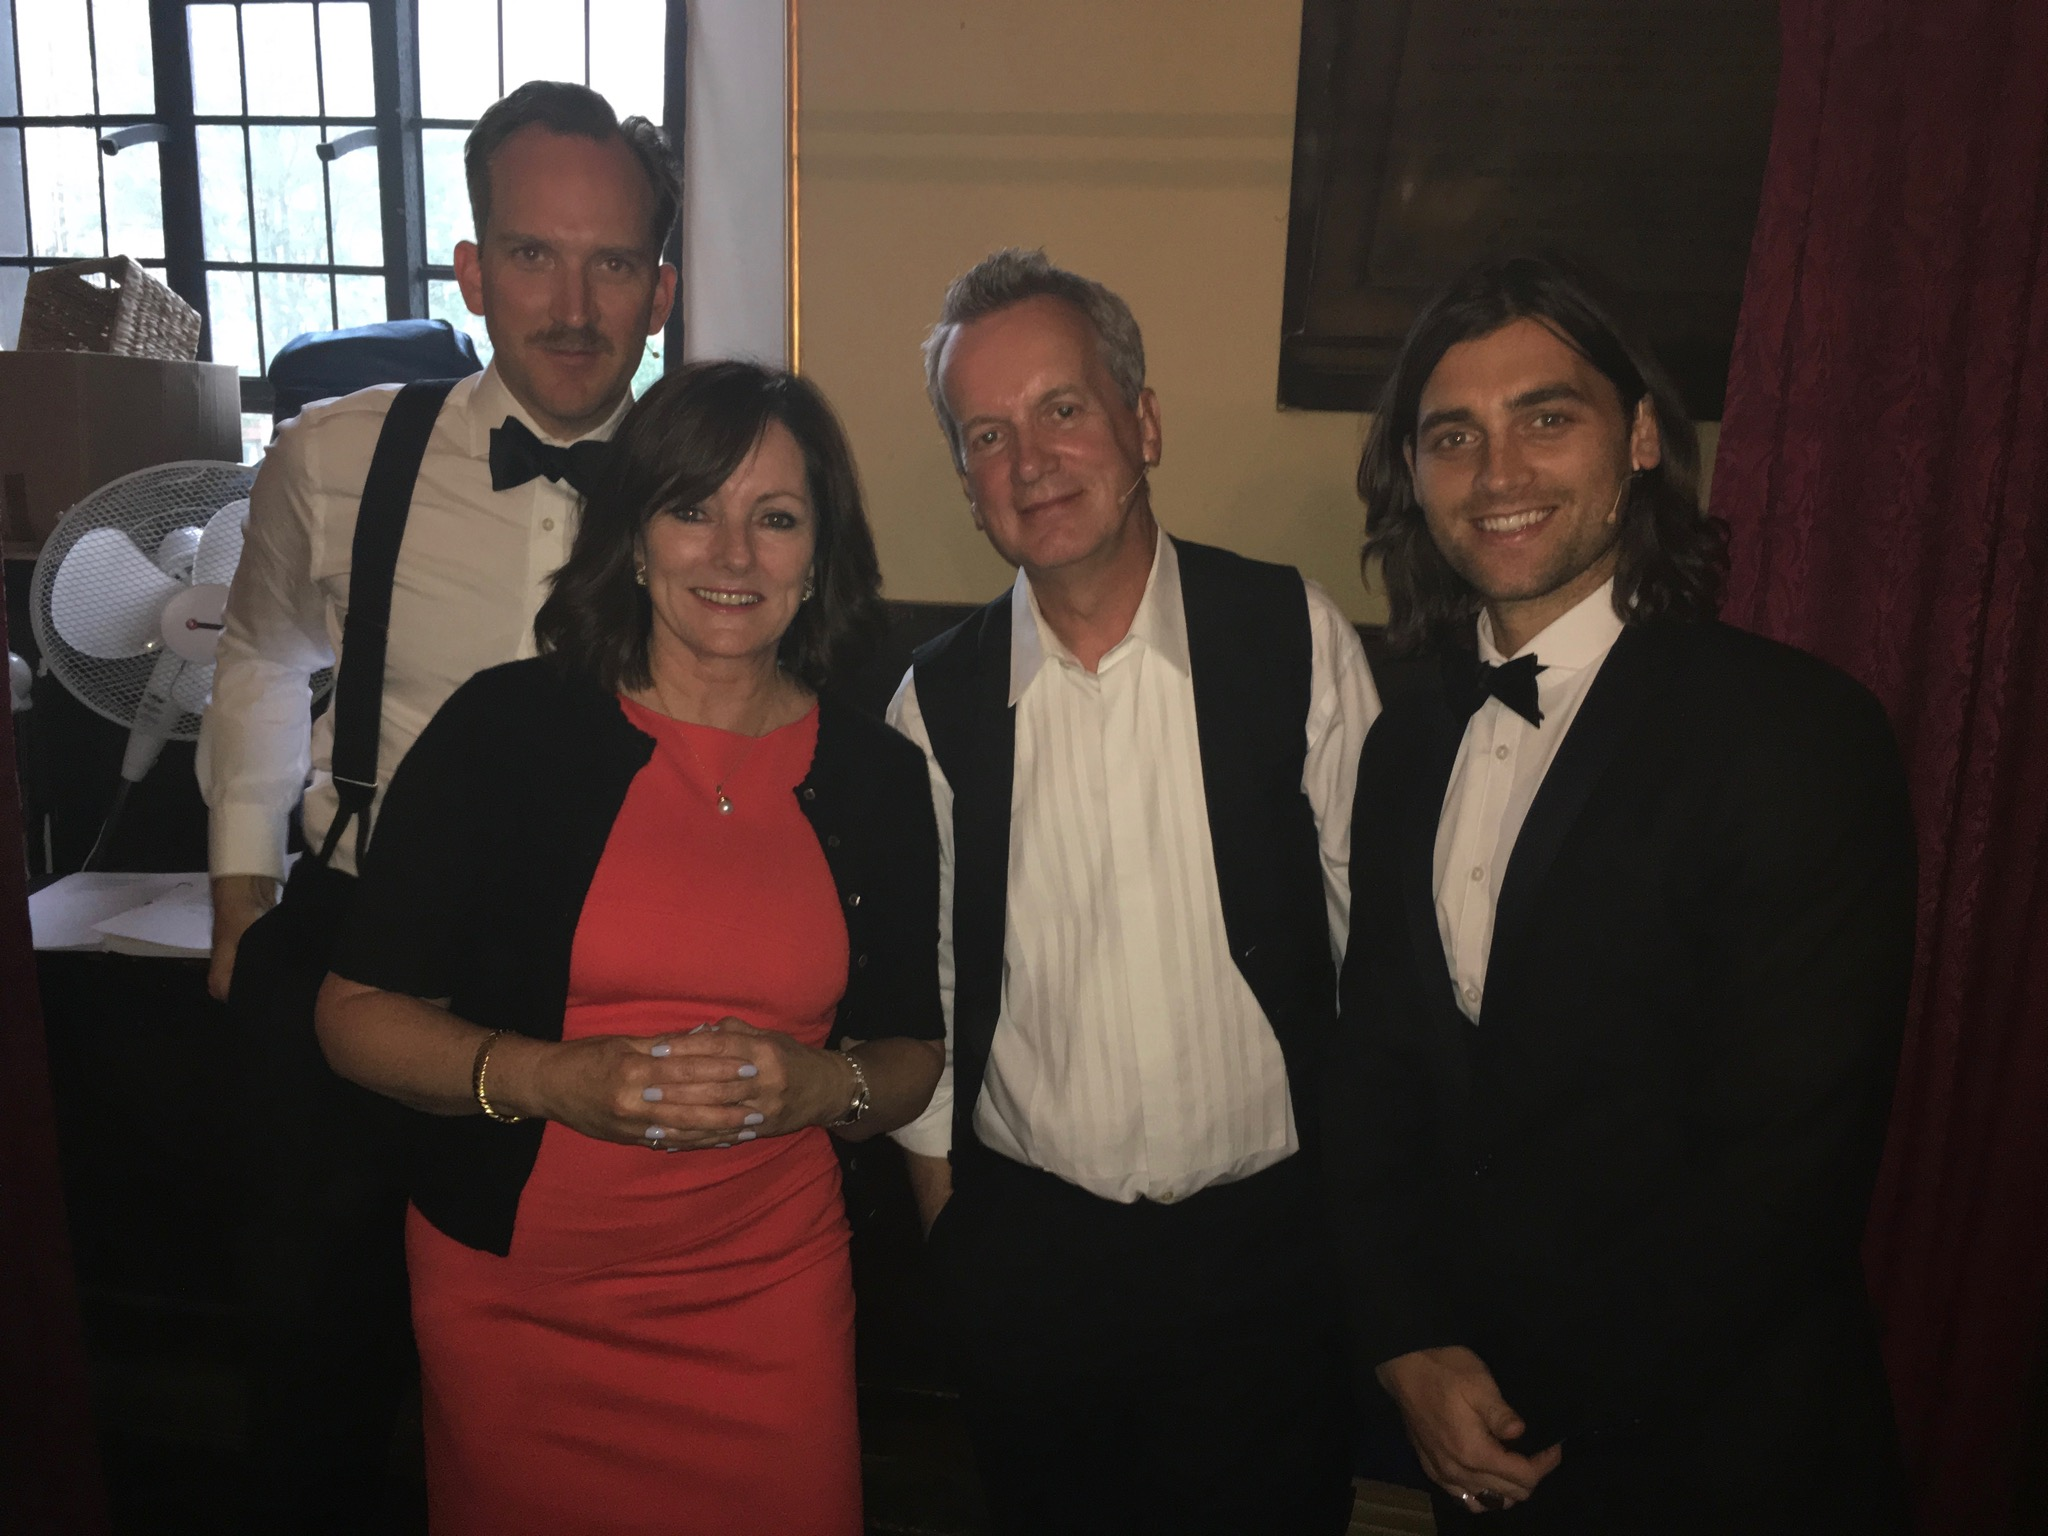 Jacquie Storey with some of the cast of the 60th My fair Lady celebrations Freddie Eynsford - Hill – Bradley Jaden Alfred Doolittle Frank Skinner Colonel Pickering – Stephen Carlile